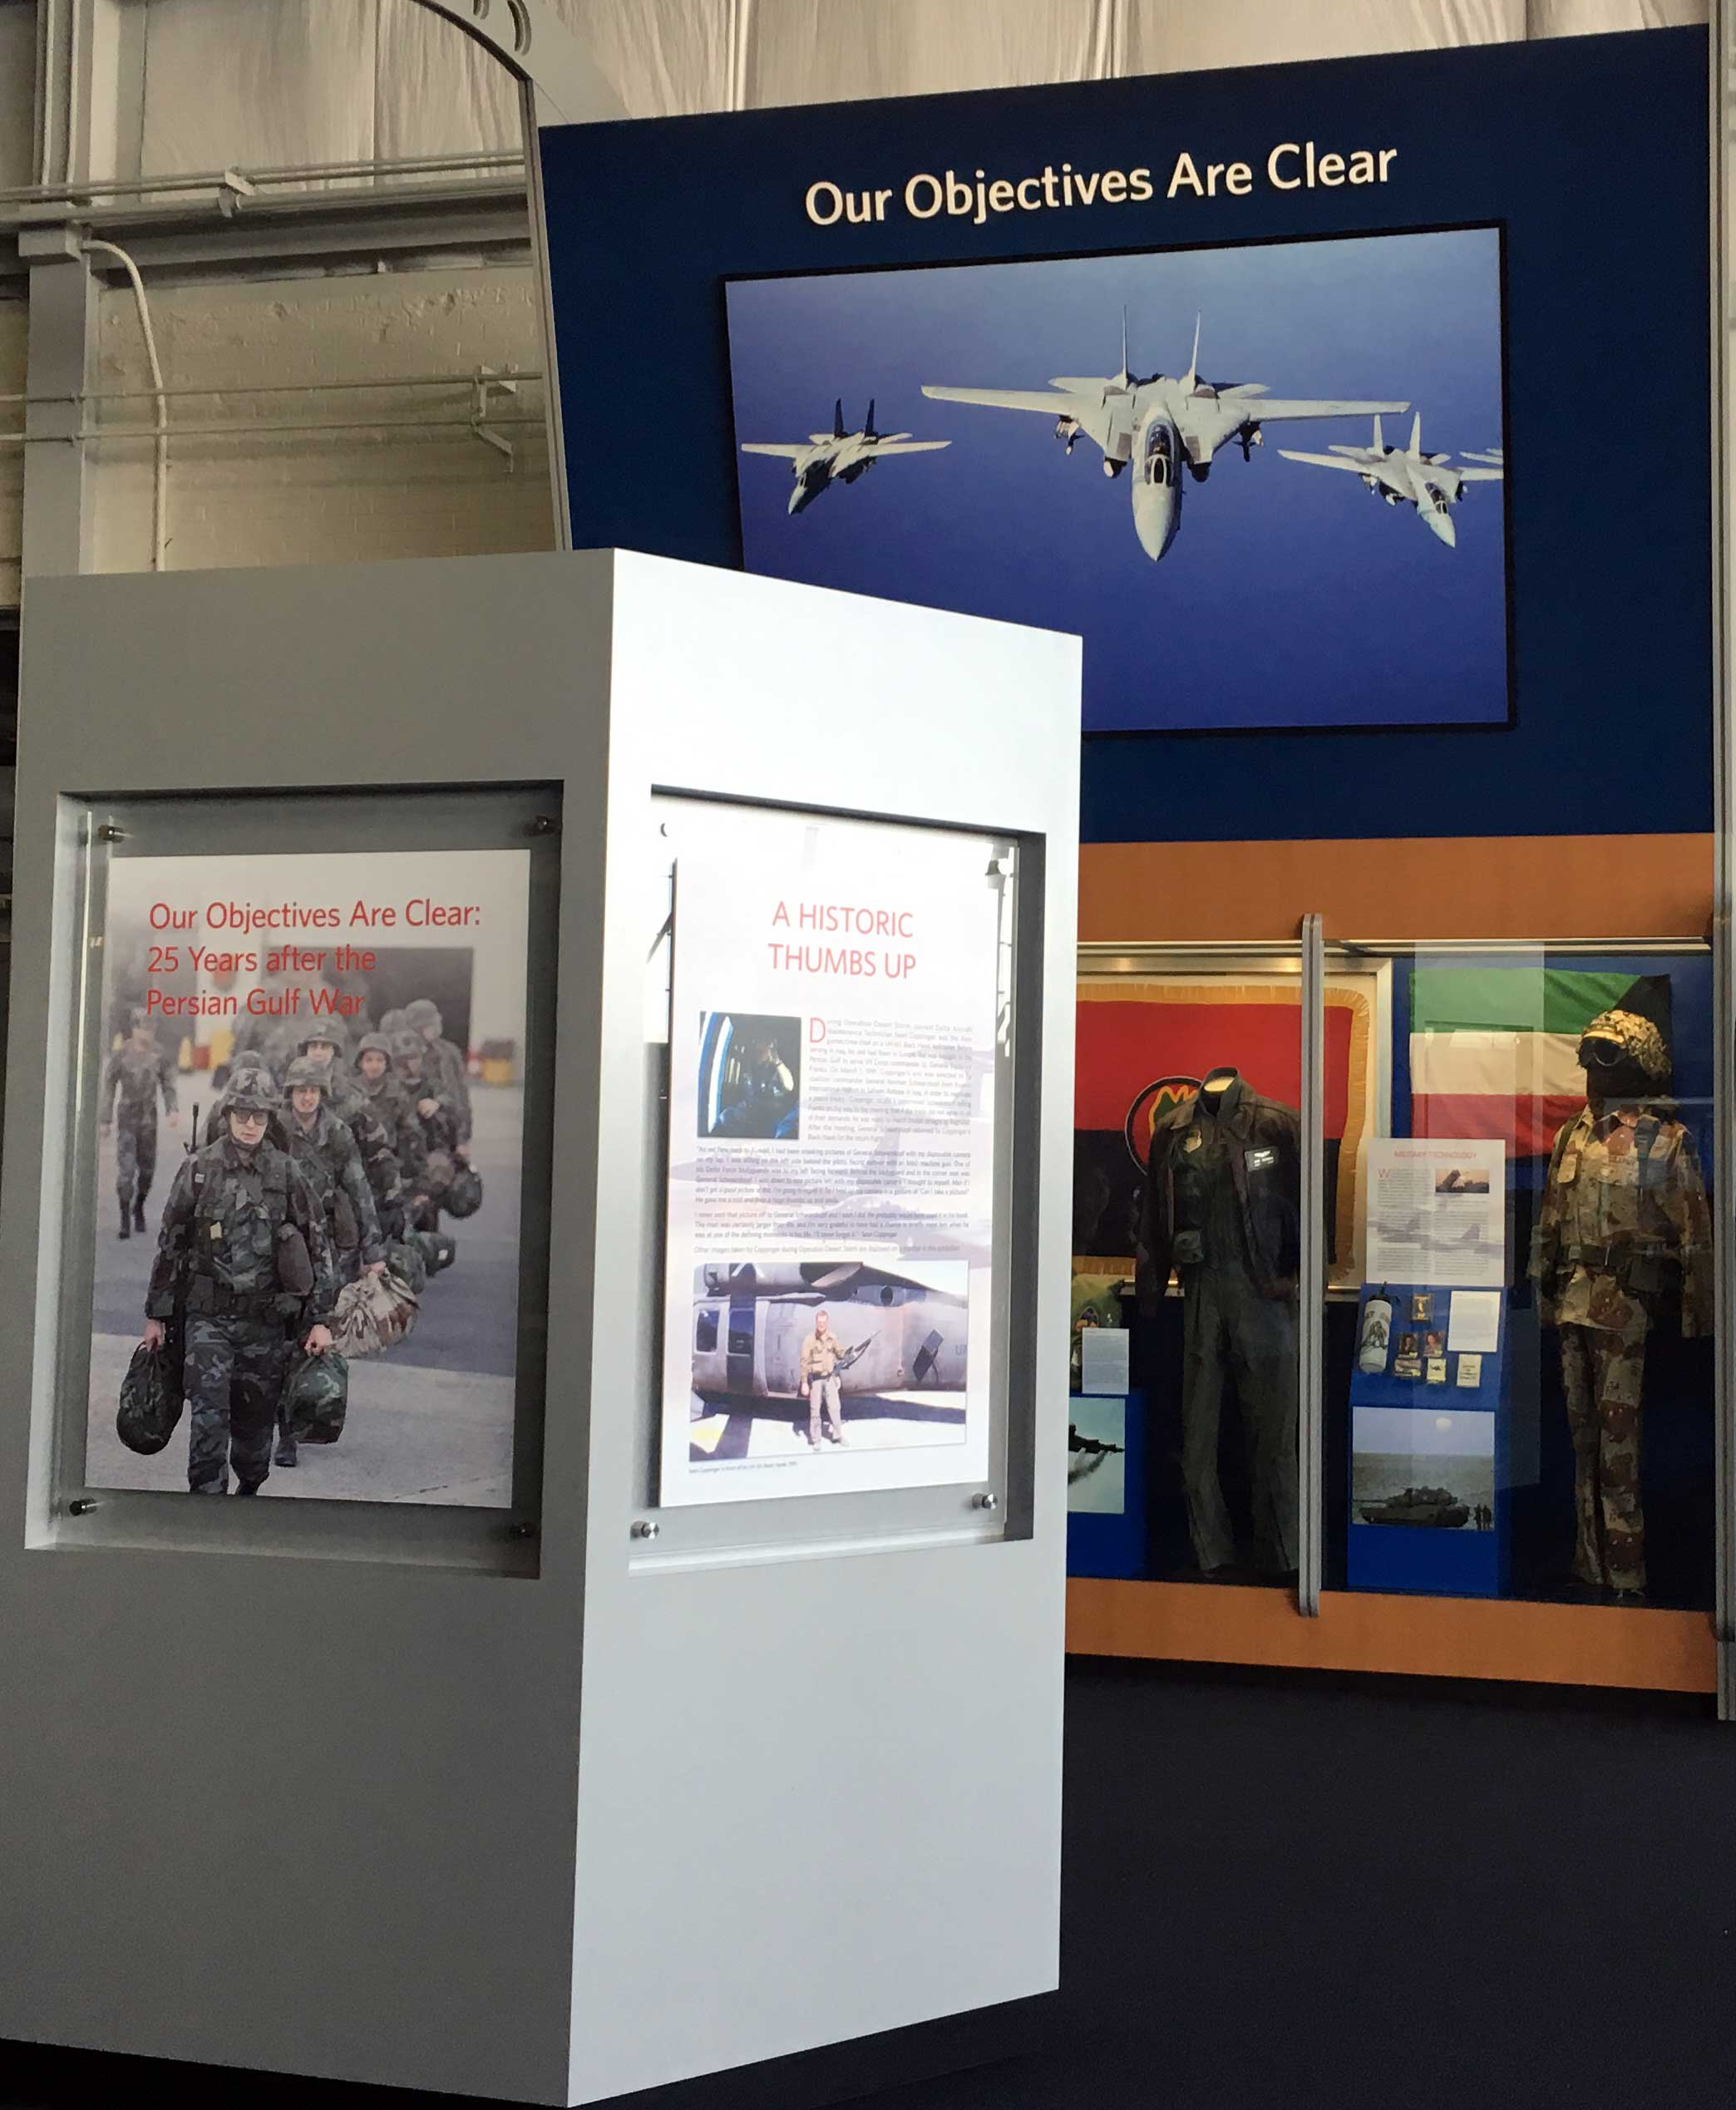 Image of Persian Gulf War Exhibit at the Delta Flight Museum showing exhibit case